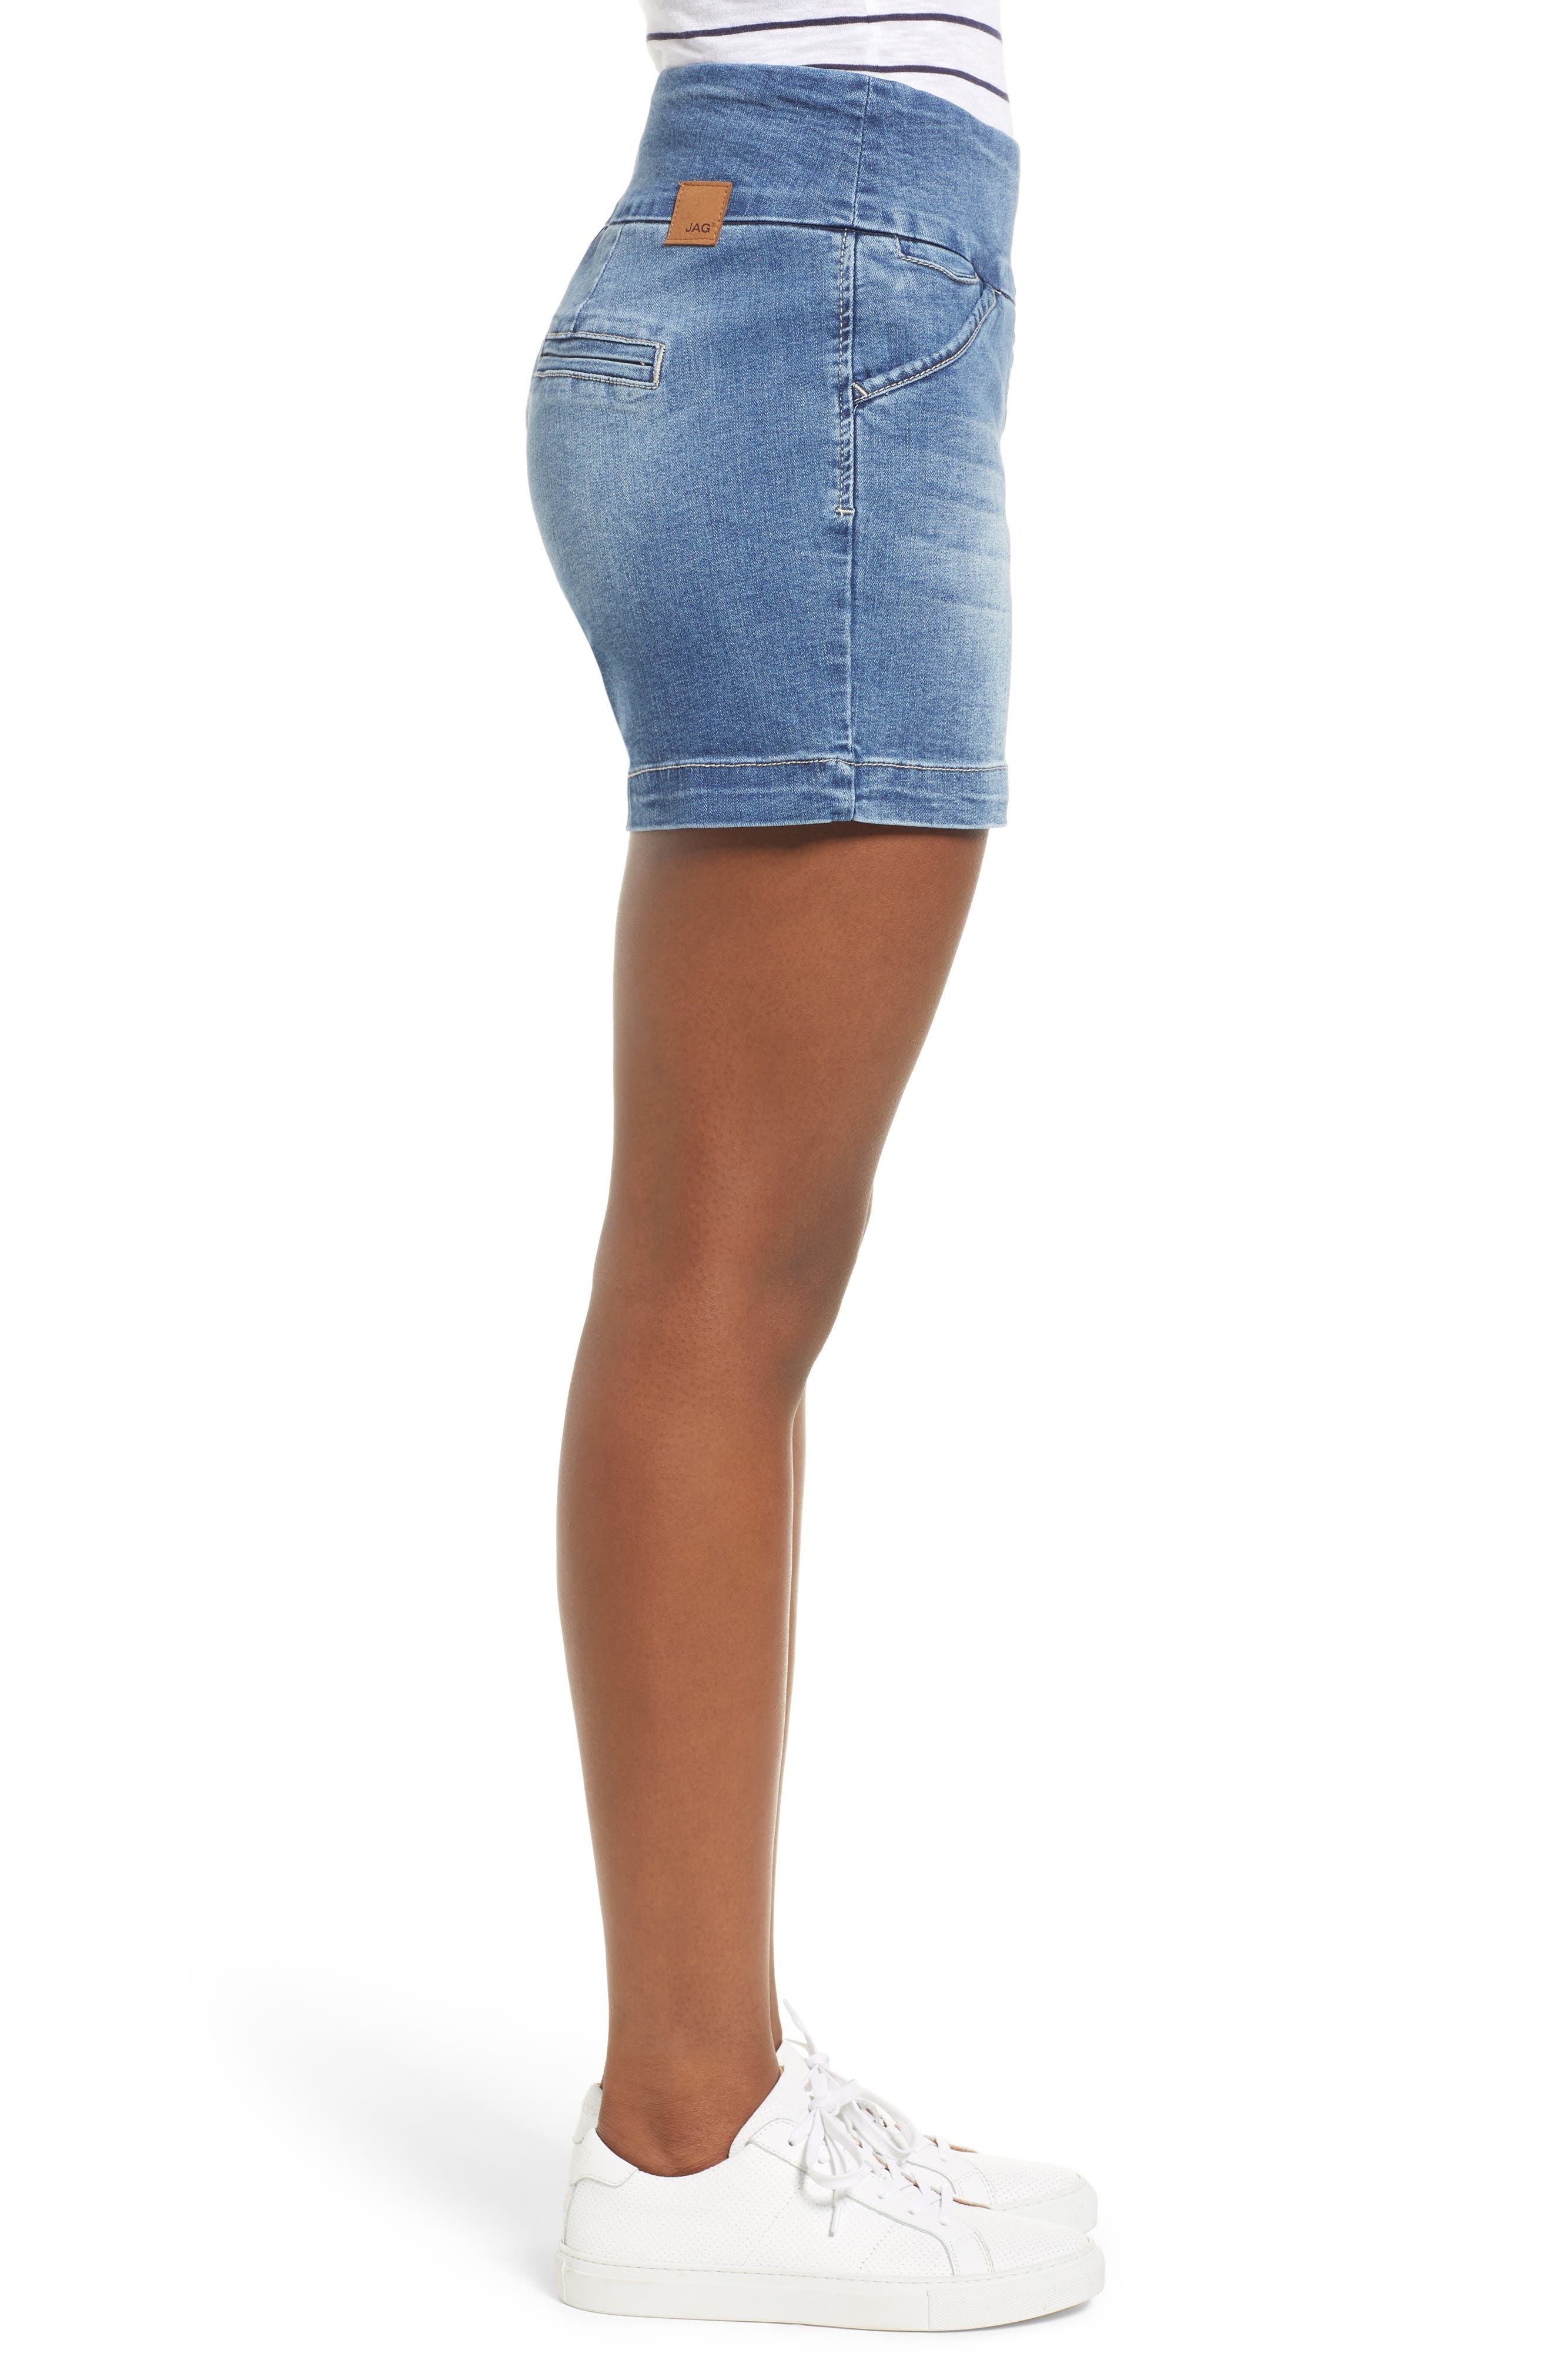 Ainsley 5 Denim Shorts,                             Alternate thumbnail 3, color,                             Med Indigo